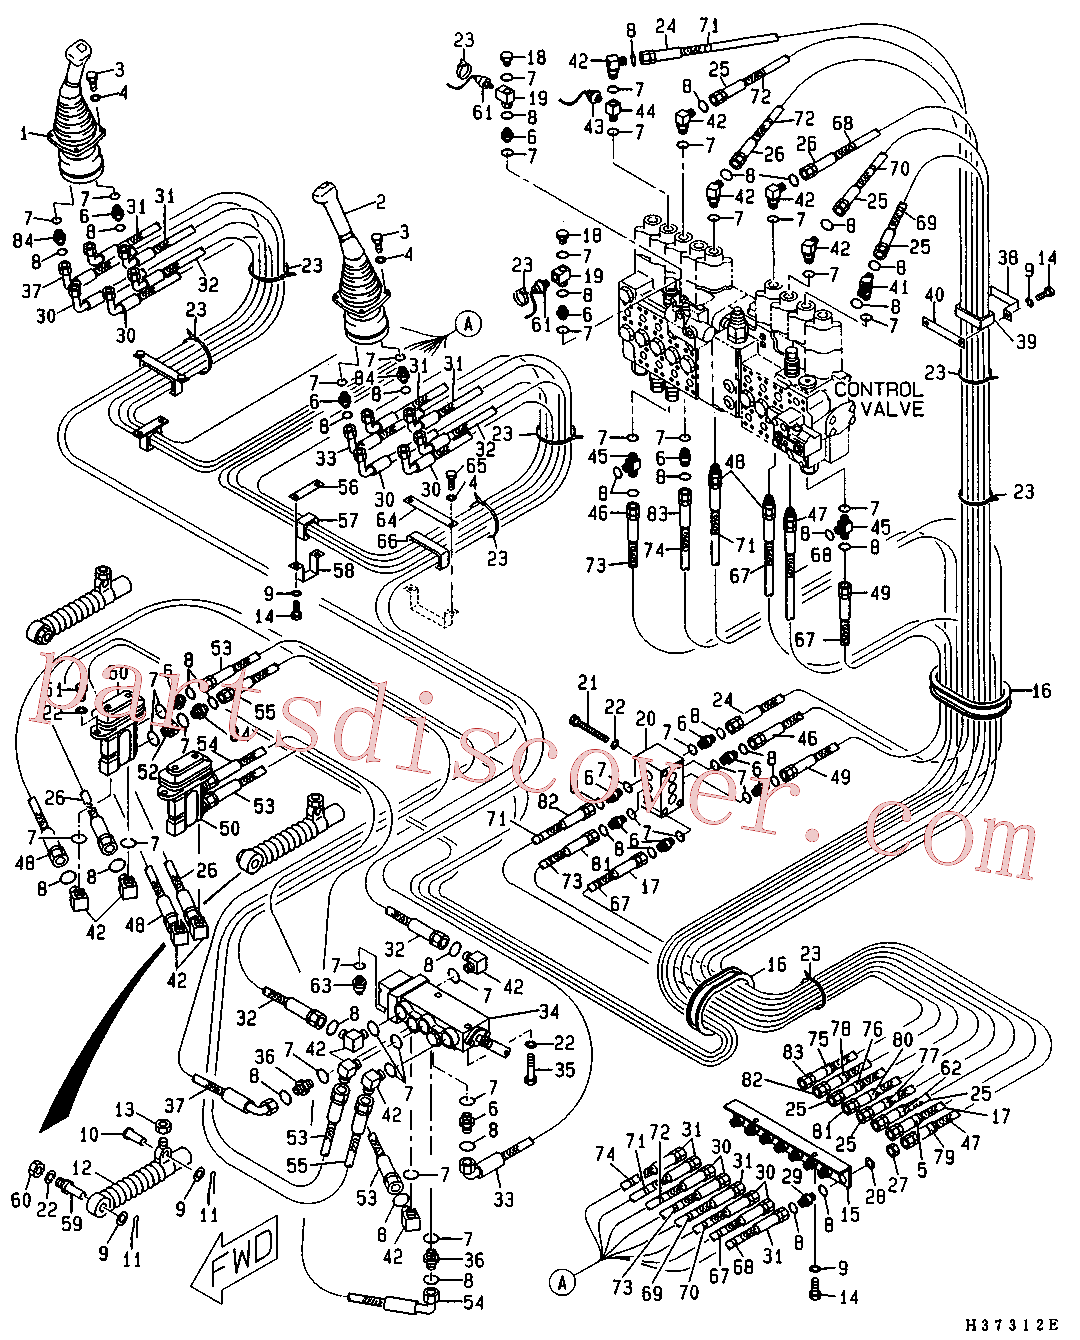 CAT 105-3484 for 326D2 L Excavator(EXC) hydraulic system 5I-8607 Assembly